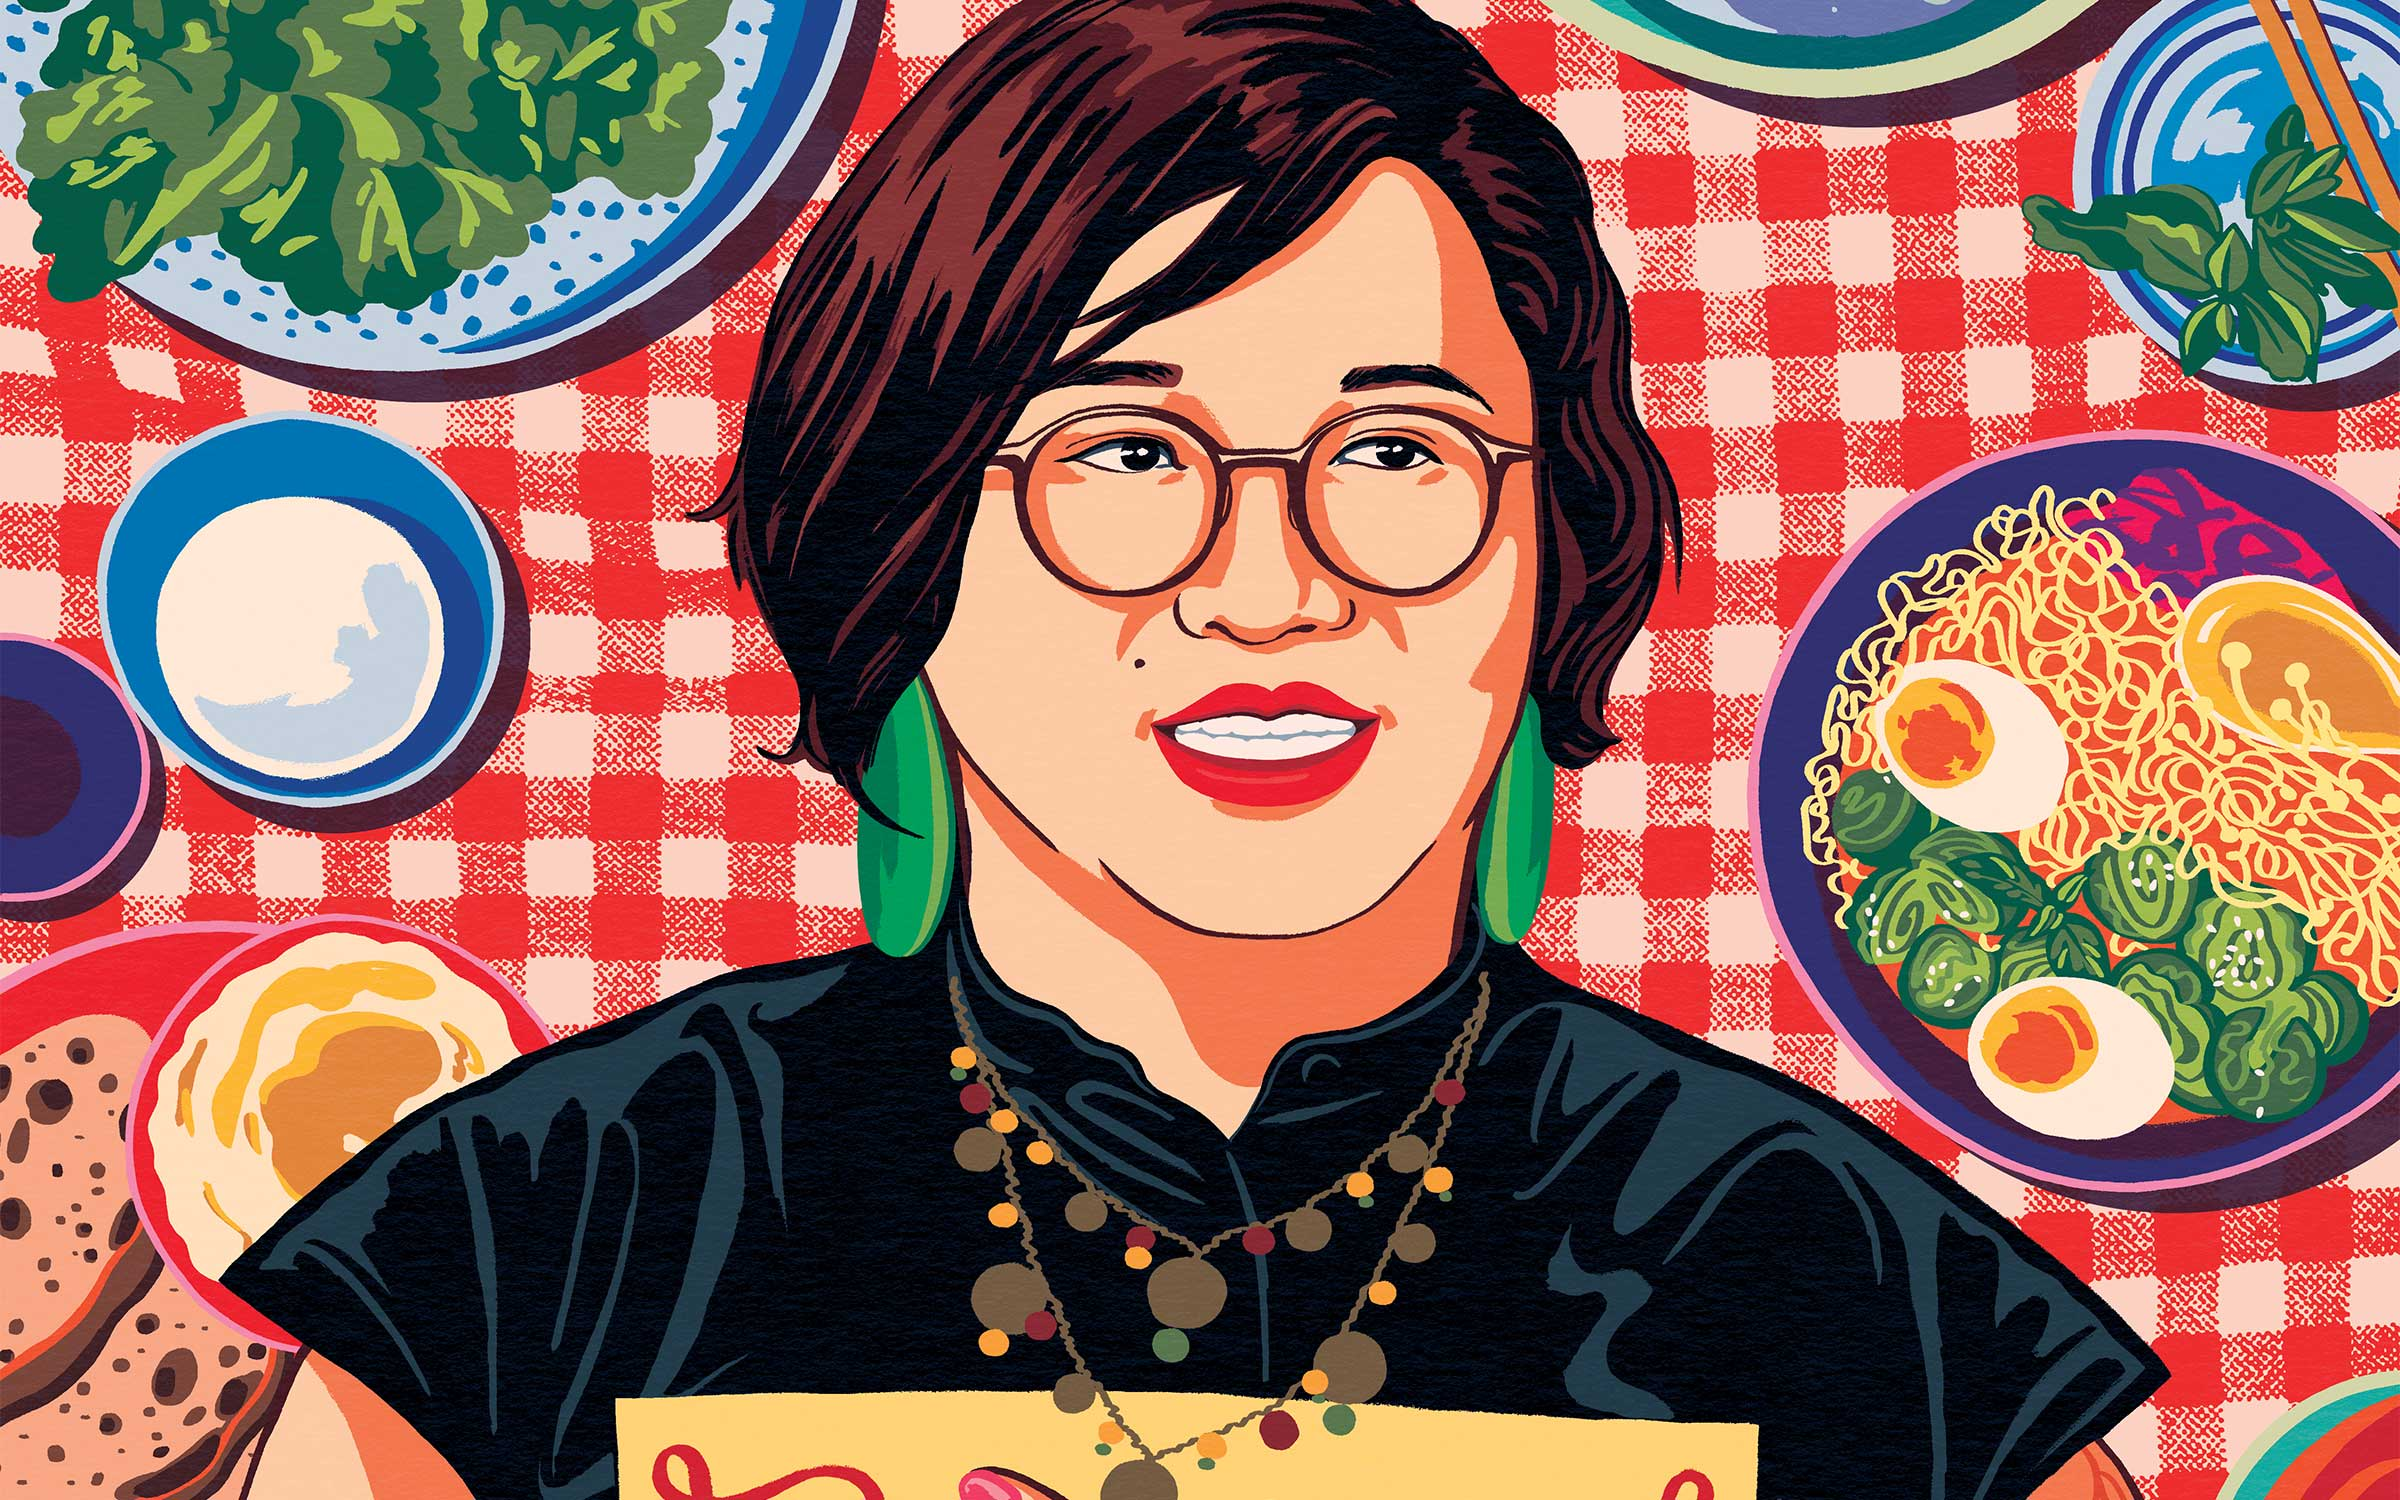 an illustration of restaurant critic Soleil Ho, an Asian woman with short brown hair, in glasses, green earrings, and red lipstick. She is holding a menu while standing in front of a red checkered pattern surrounded by different plates of food